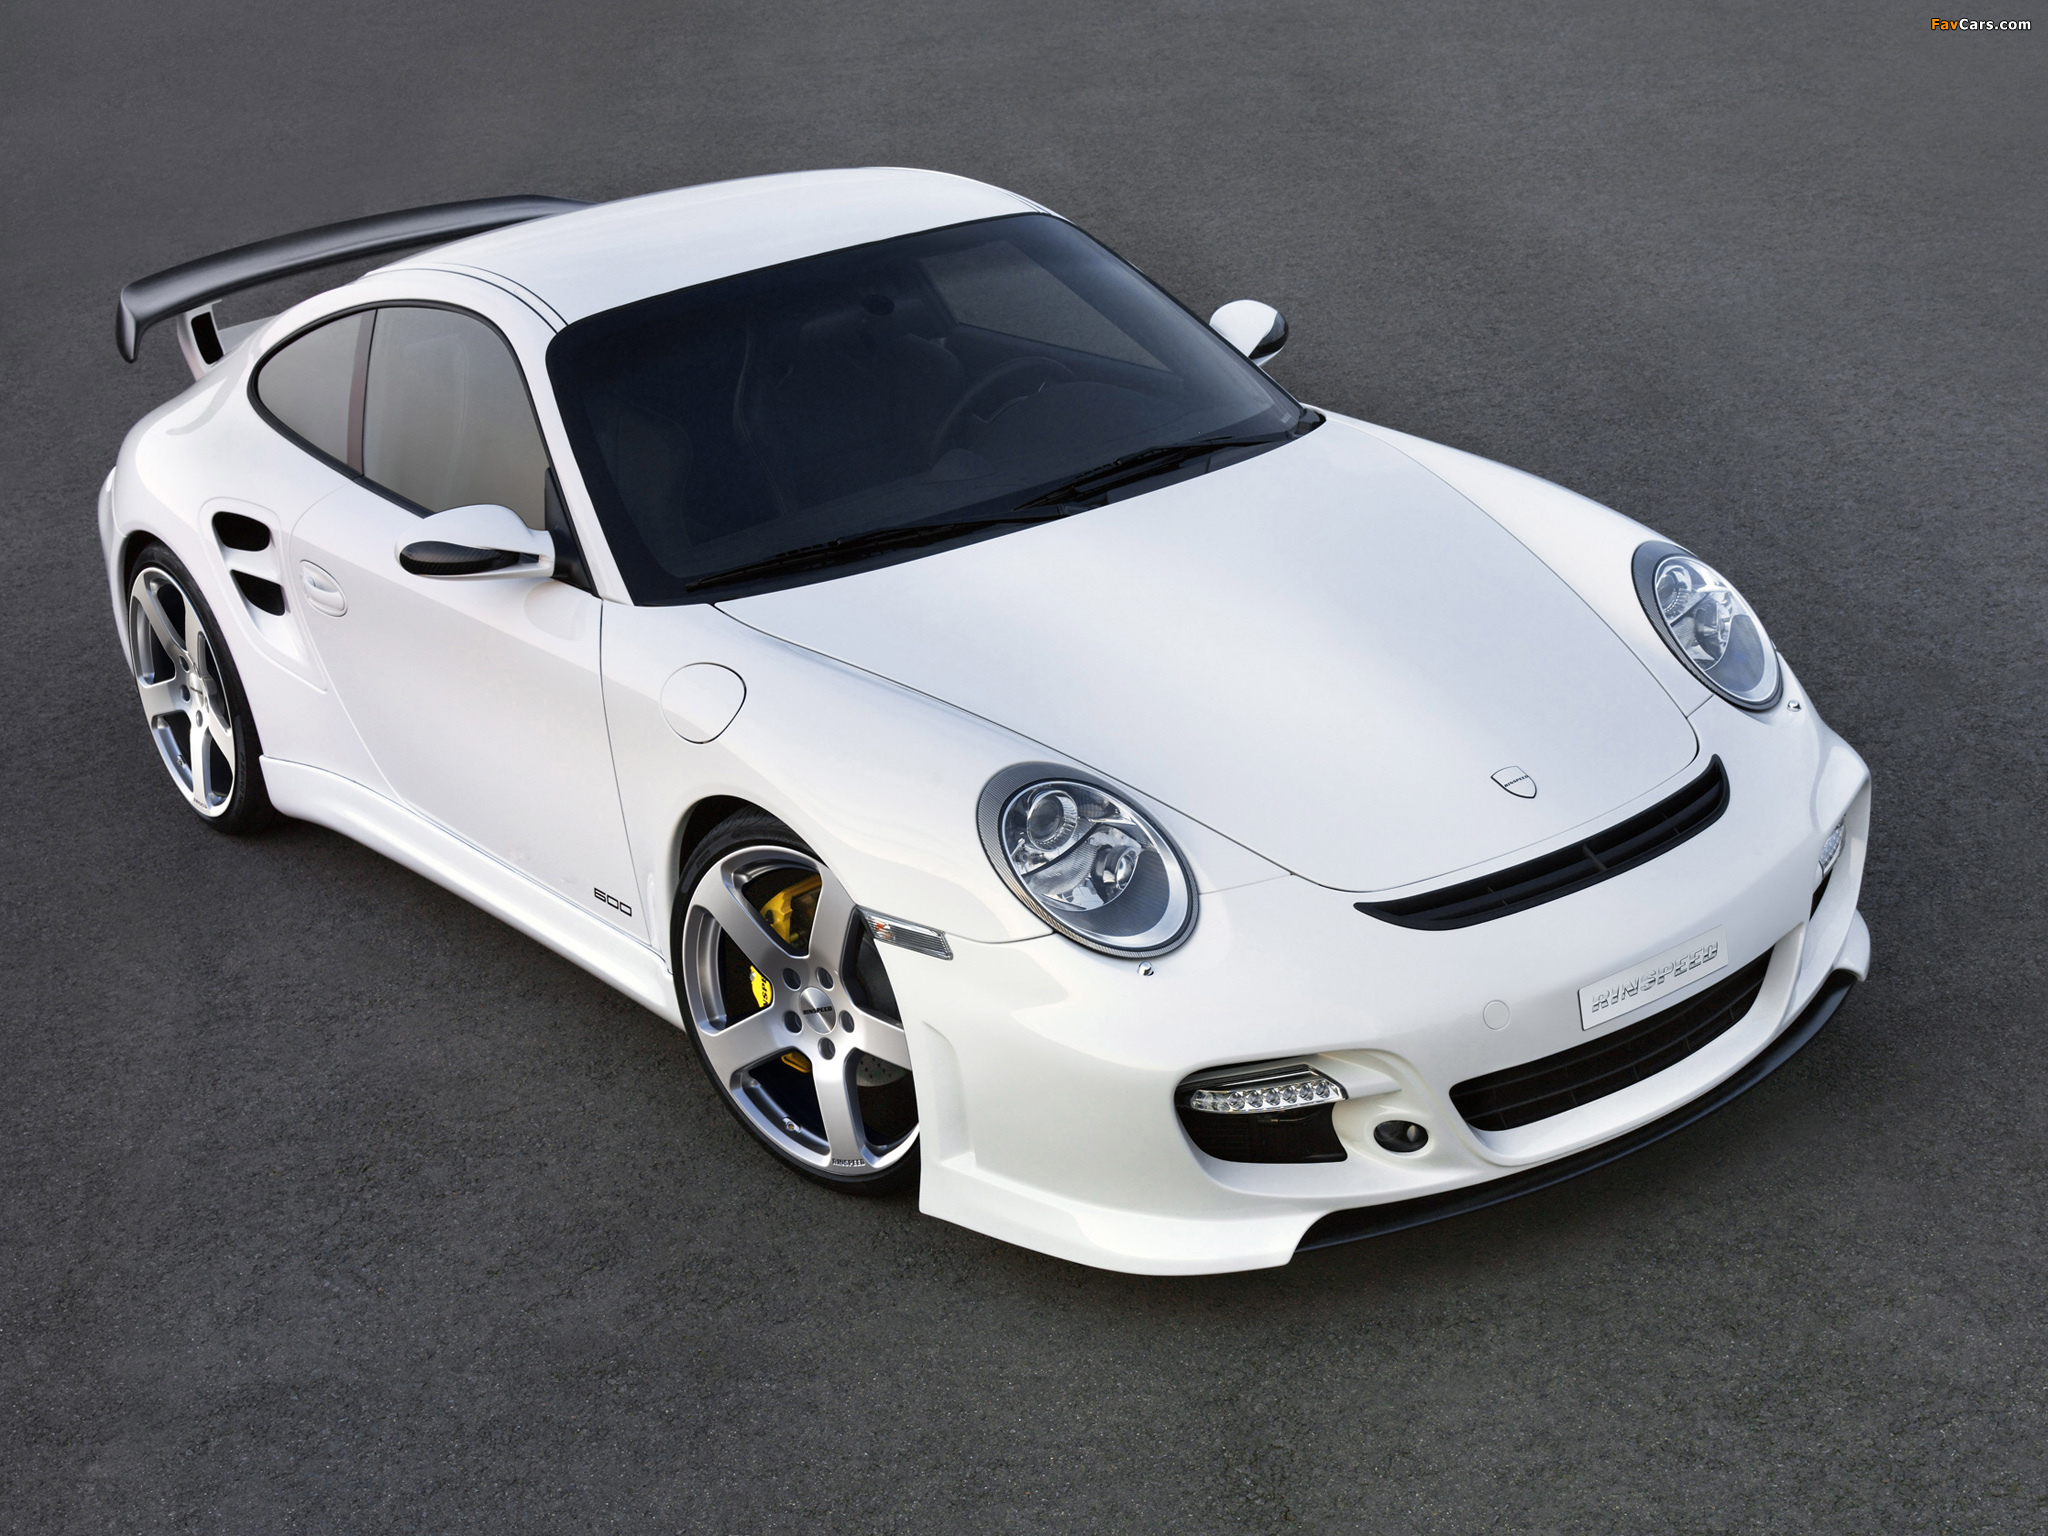 Rinspeed LeMans based on Porsche 911 Turbo (997) 2007 wallpapers (2048 x 1536)